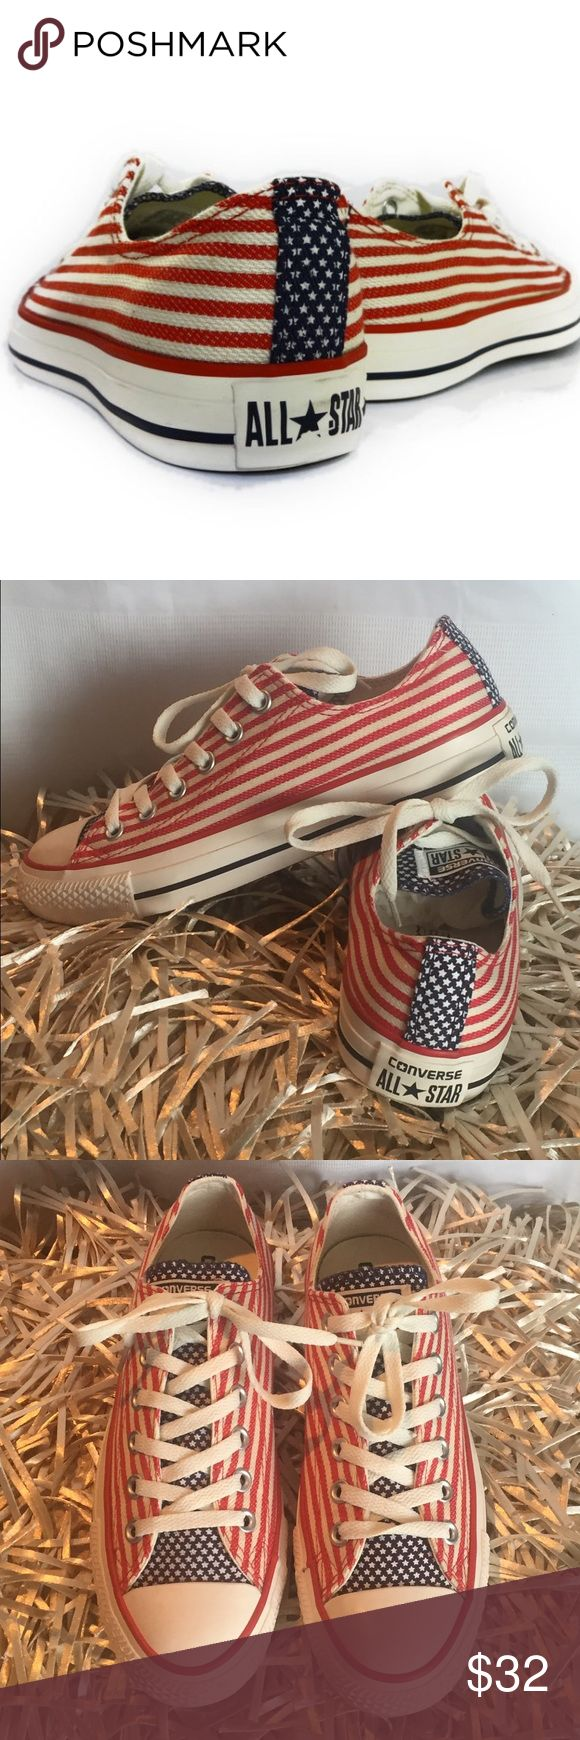 Converse | PATRIOTIC RED, WHITE, & BLUE | 7.5 You are purchasing authentic Converse ALL-STAR sneakers with a patriotic flair.! This is a great way to celebrate Memorial Day, Fourth of July, Labor Day, Veterans Day or any other themed day. New with Box. For offers, click the button! SIZE 7.5 US WOMANS Converse Shoes Sneakers